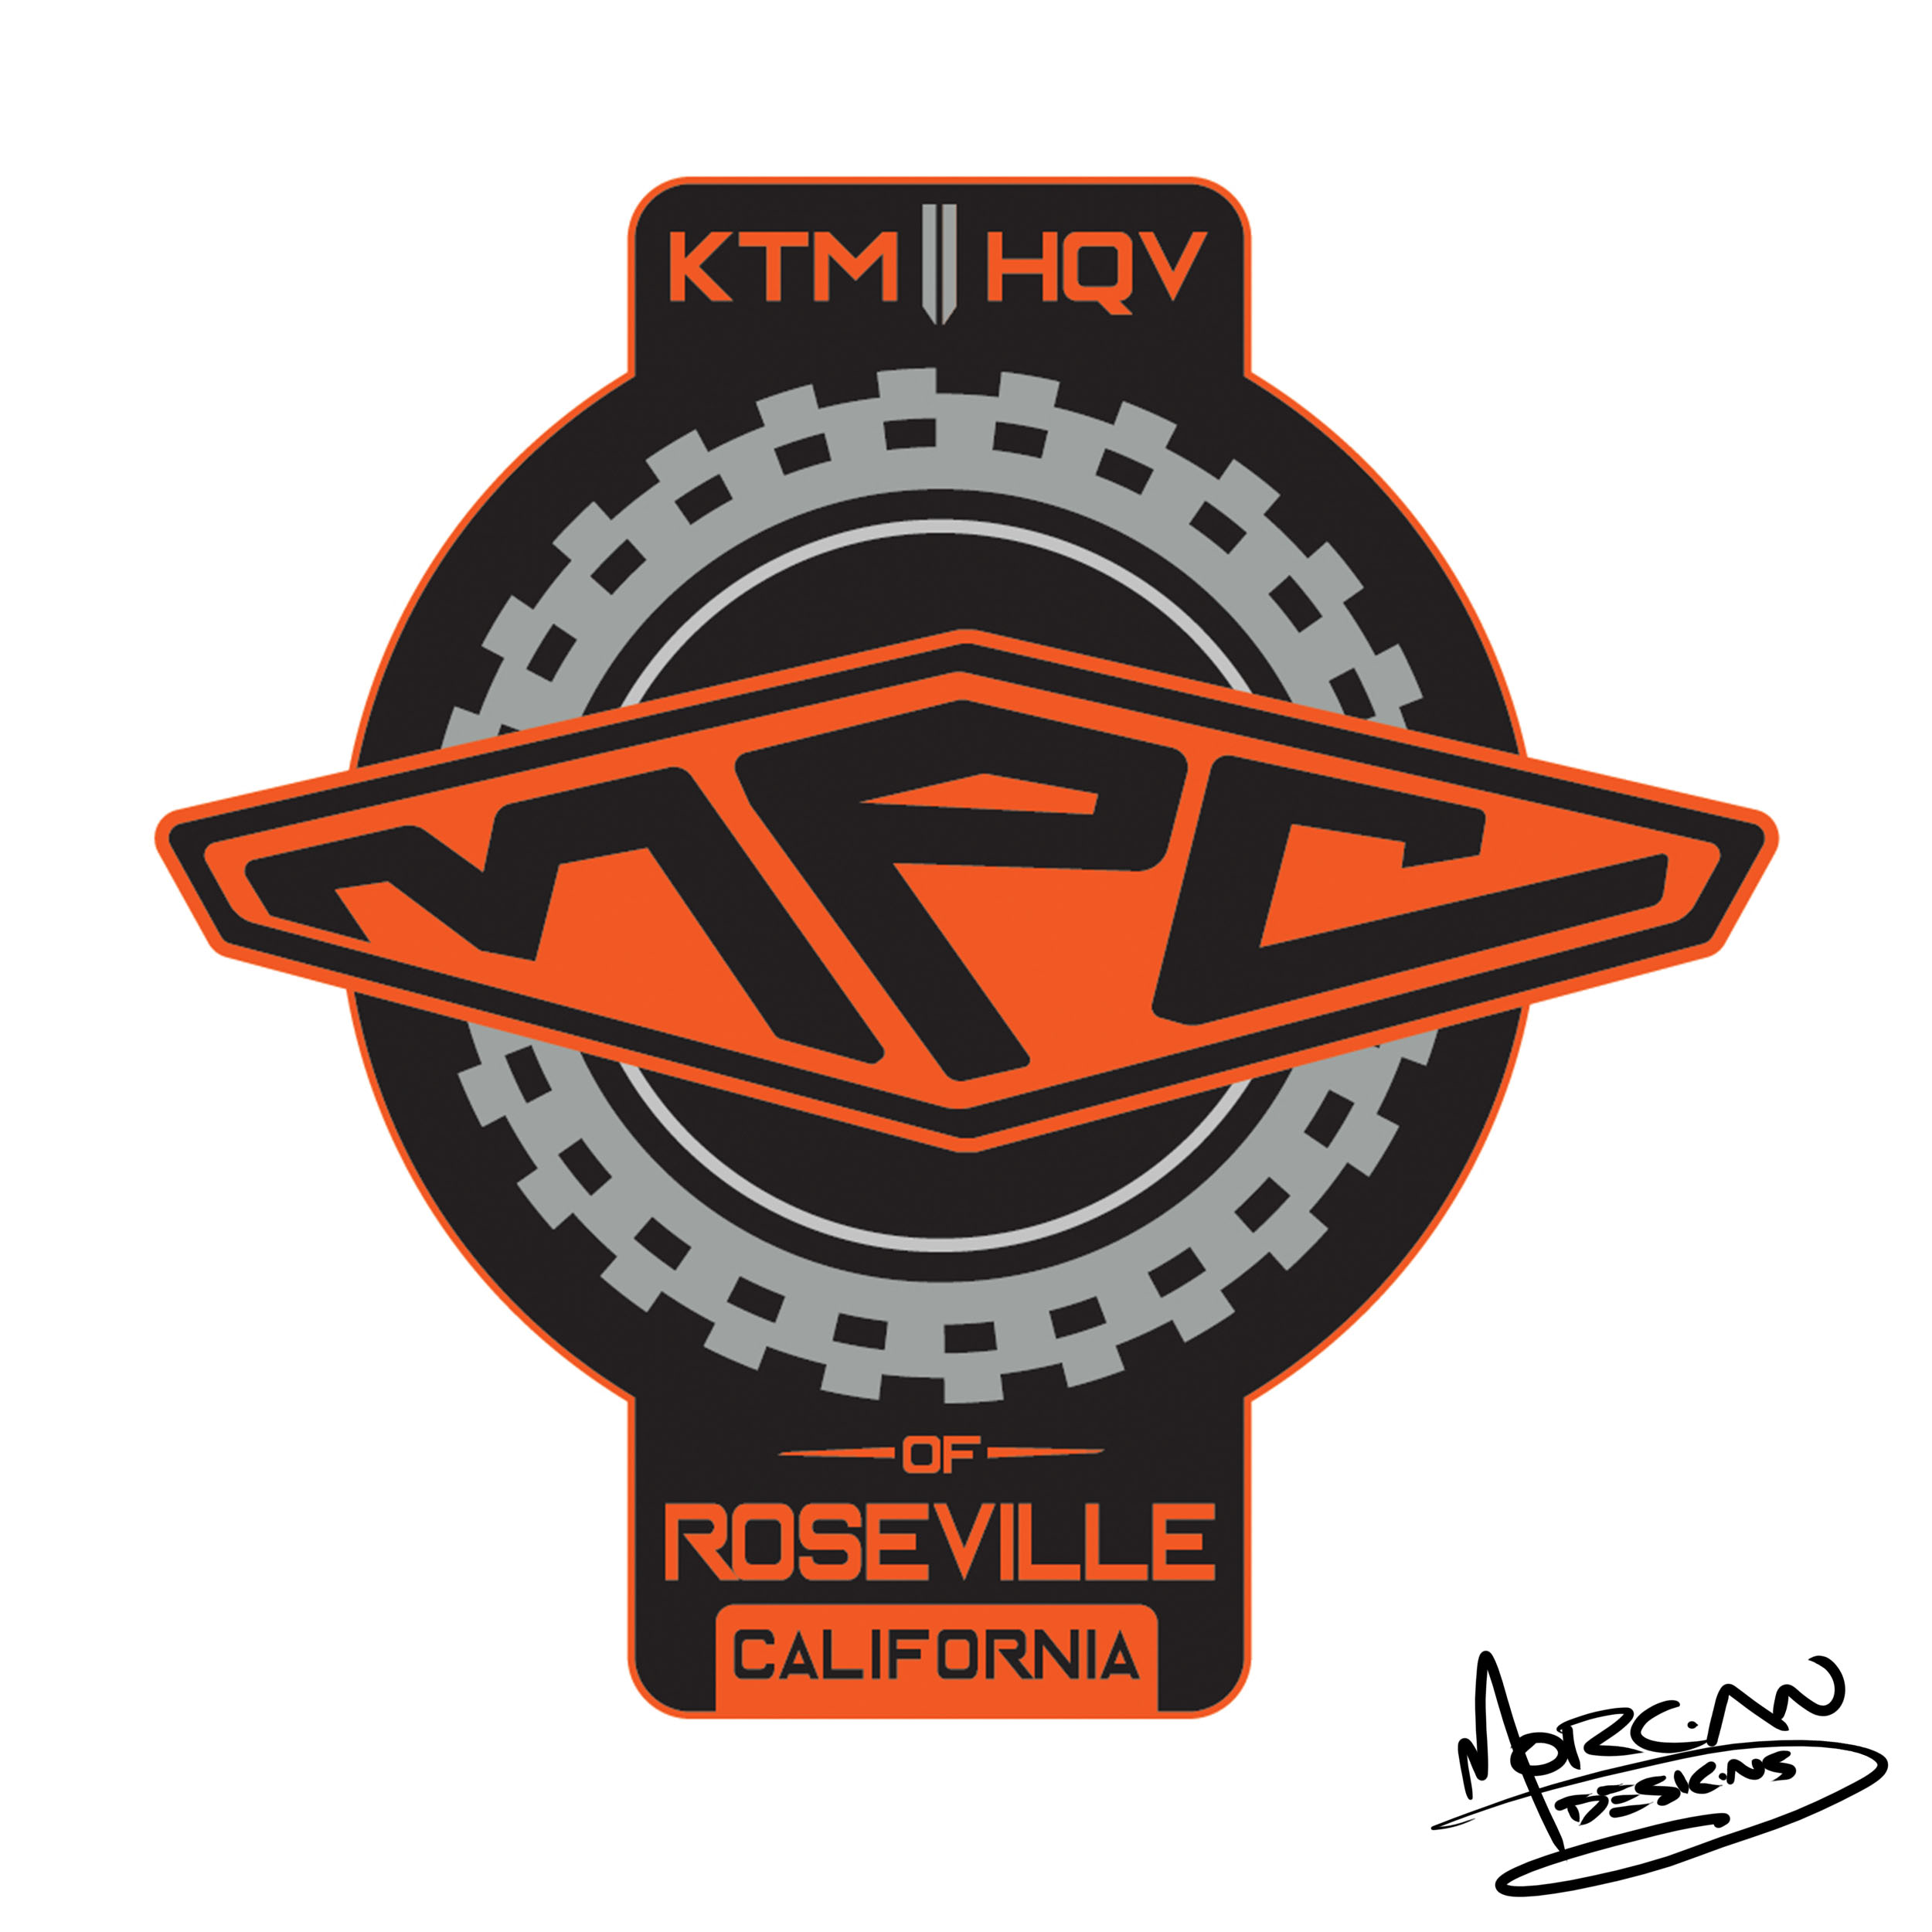 KTM motorcycle shop logo by mike morgan